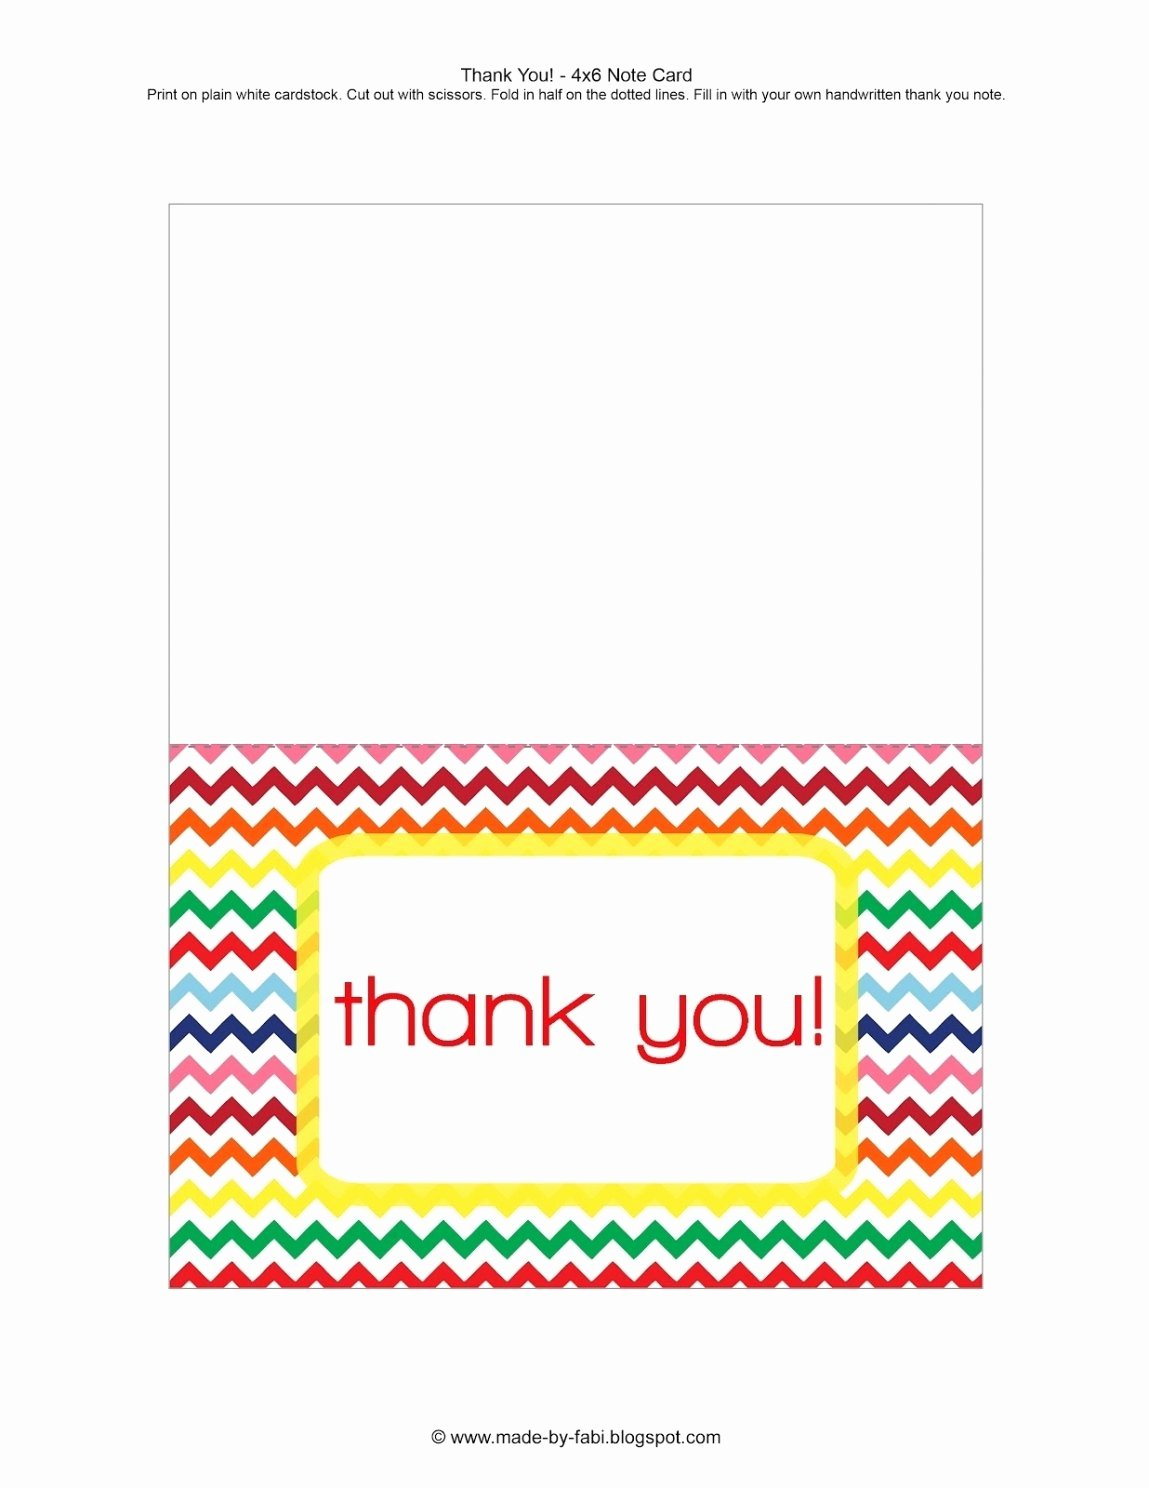 Thank You Card Template Word Best Of Free Printable Thank You Card Template Word